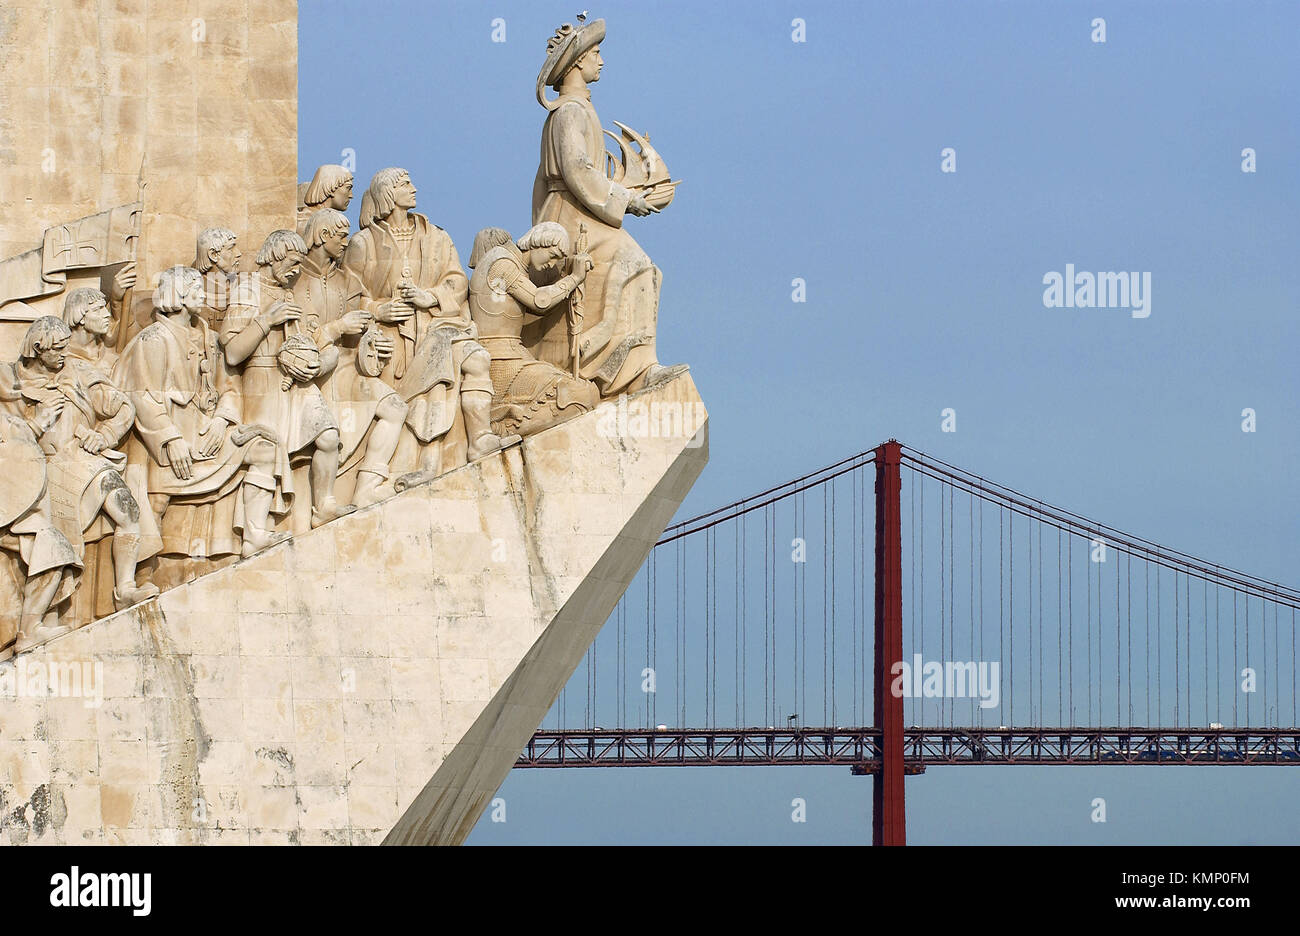 Monument to the Discoveries and April 25 Bridge, Lisbon. Portugal - Stock Image